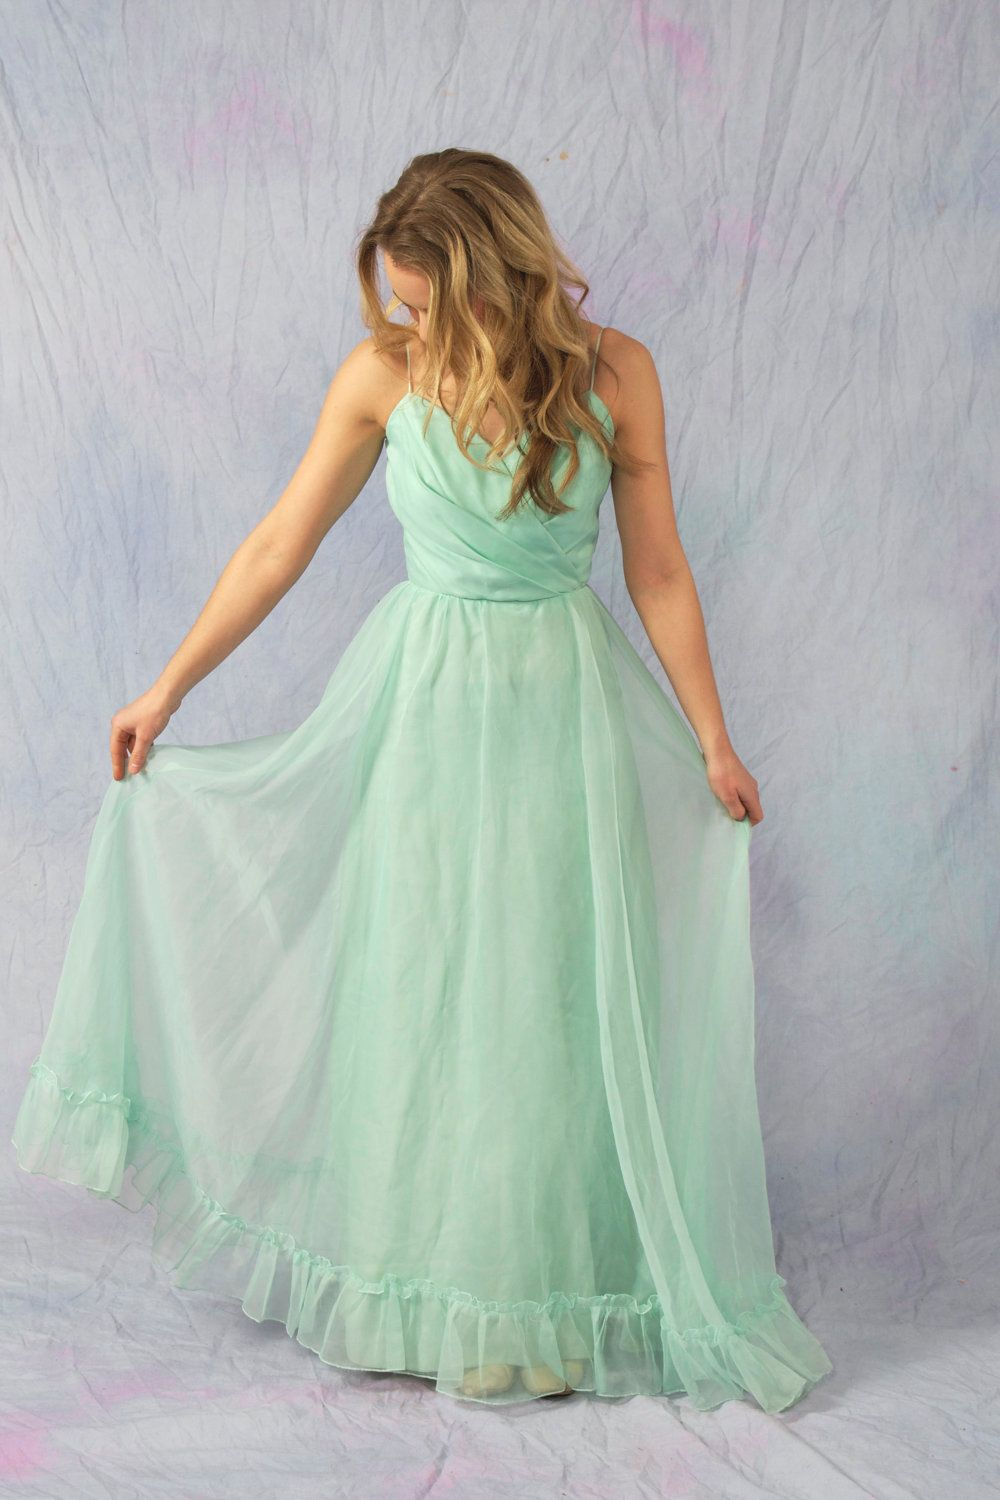 Reserved mint seafoam green vintage bridesmaid party prom long reserved mint seafoam green vintage bridesmaid party prom long dress 7400 ombrellifo Gallery